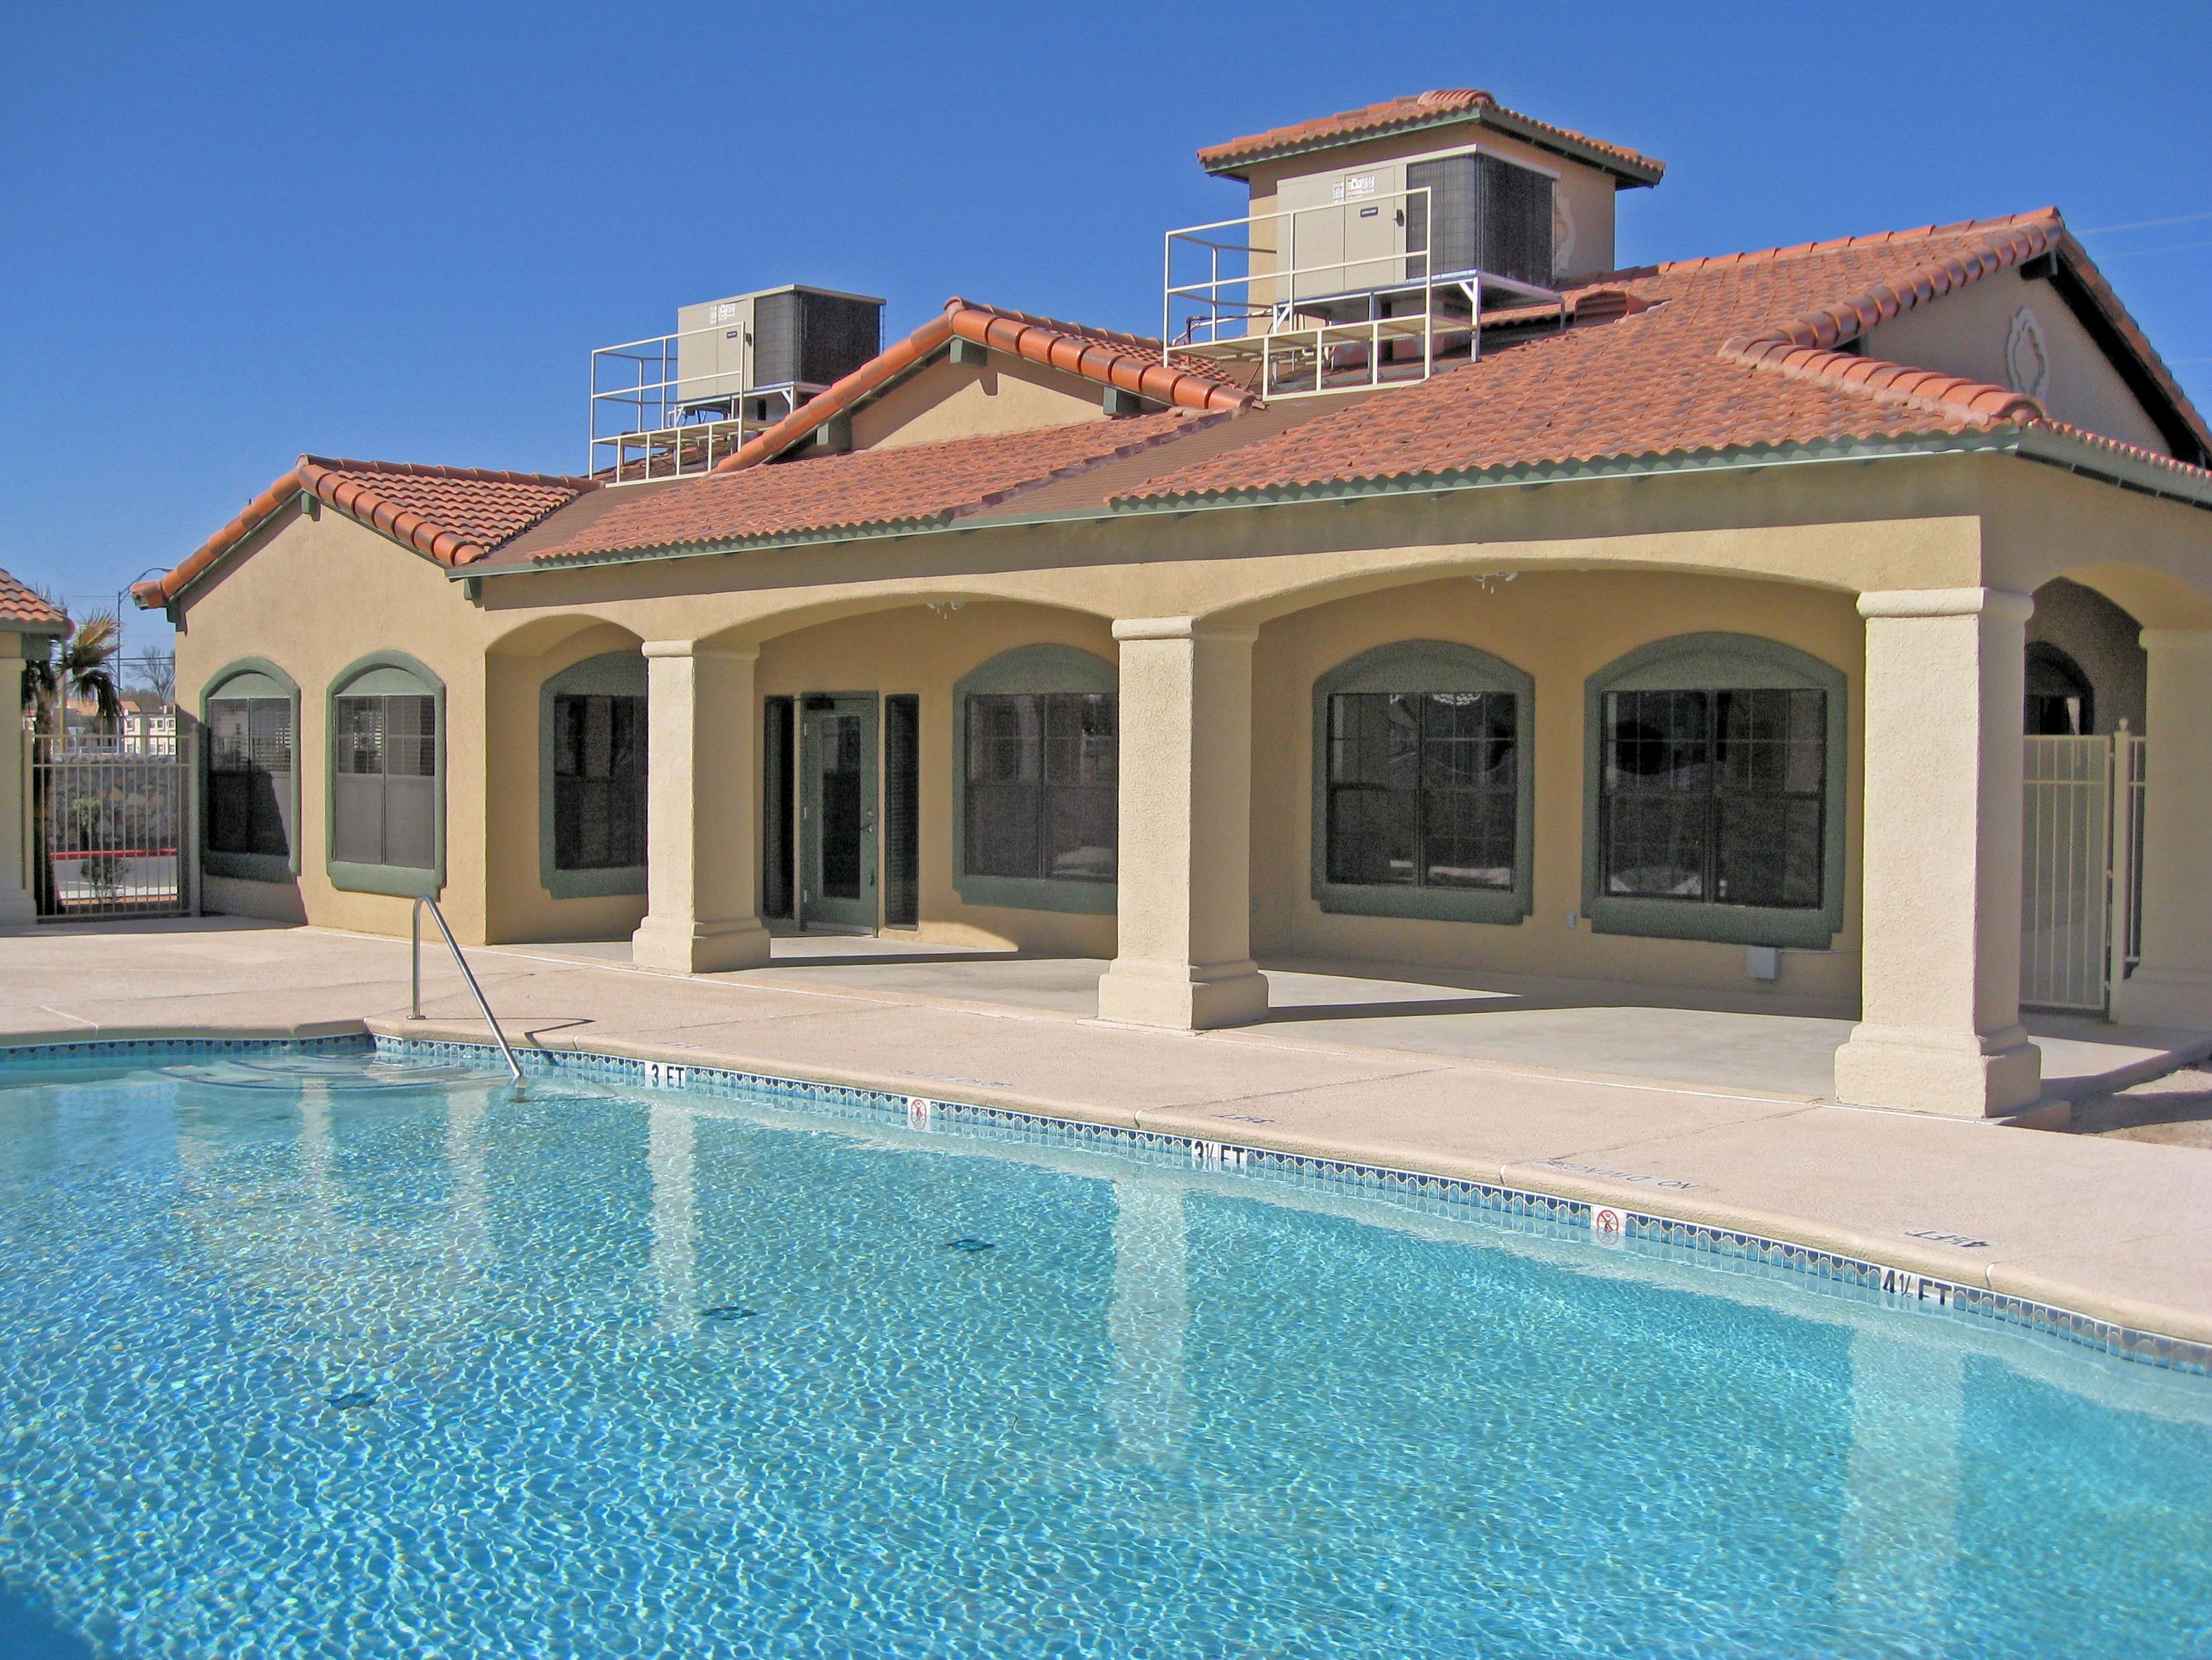 Spanish Creek Townhomes located in El Paso, TX. (With ...